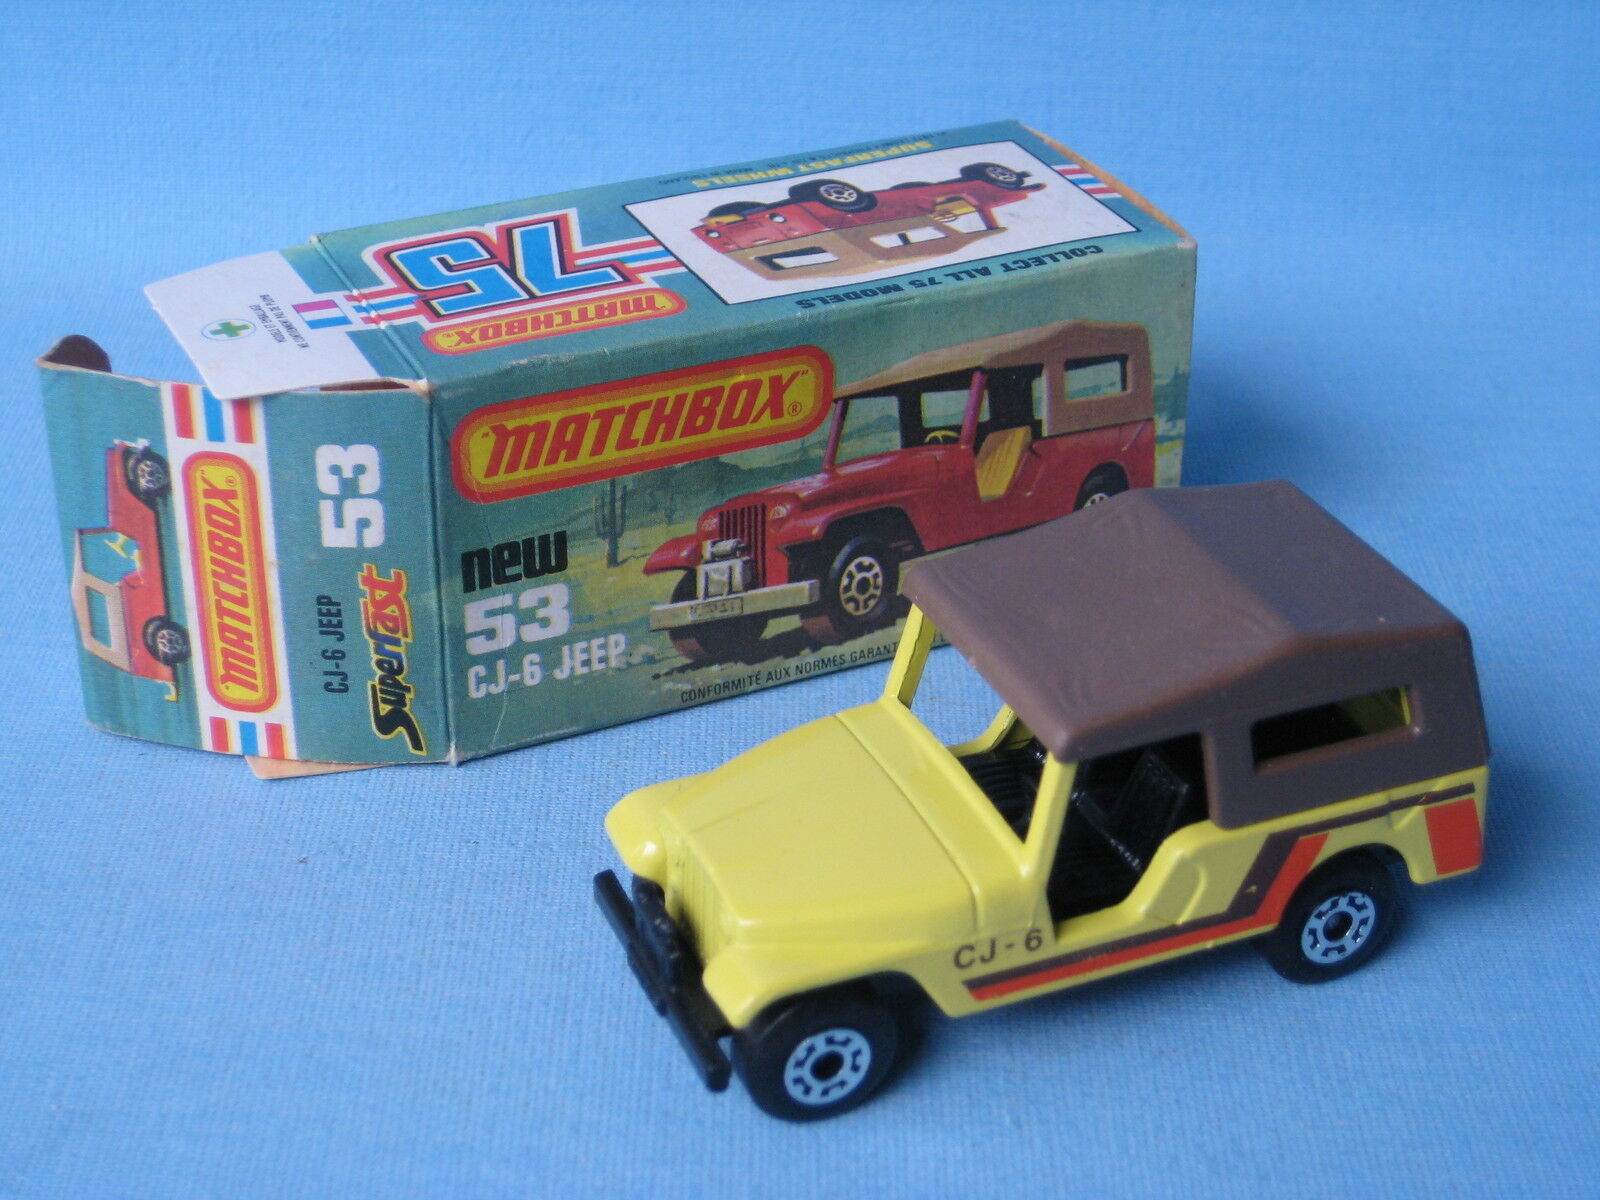 Lesney Matchbox Superfast 53 Jeep CJ6 Jeep Cream Body Rare and Boxed USA Issue